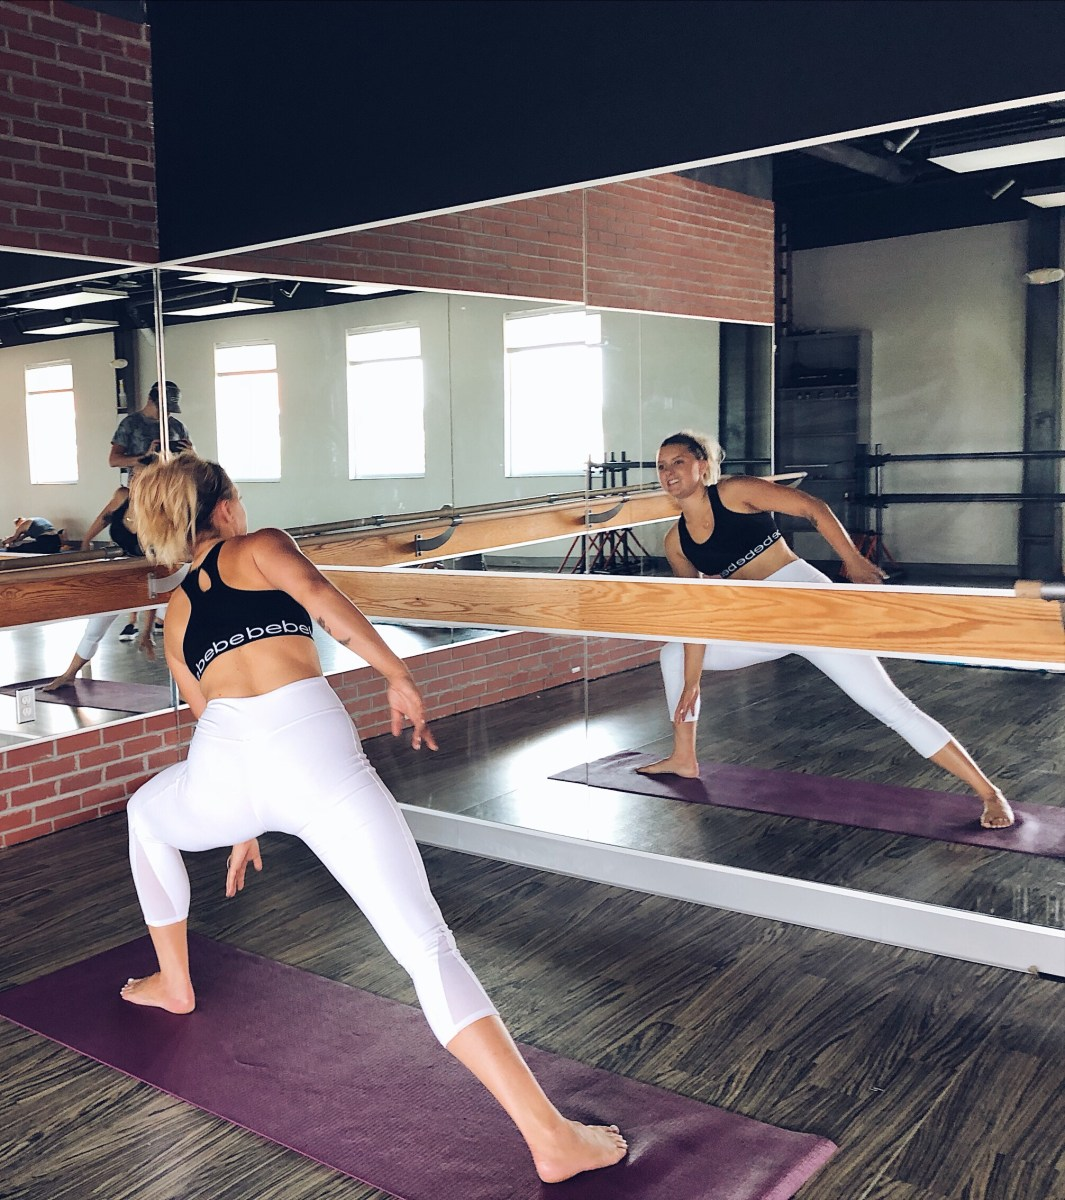 Coming in Hot: Our Time at Richmond's Hot Yoga Barre